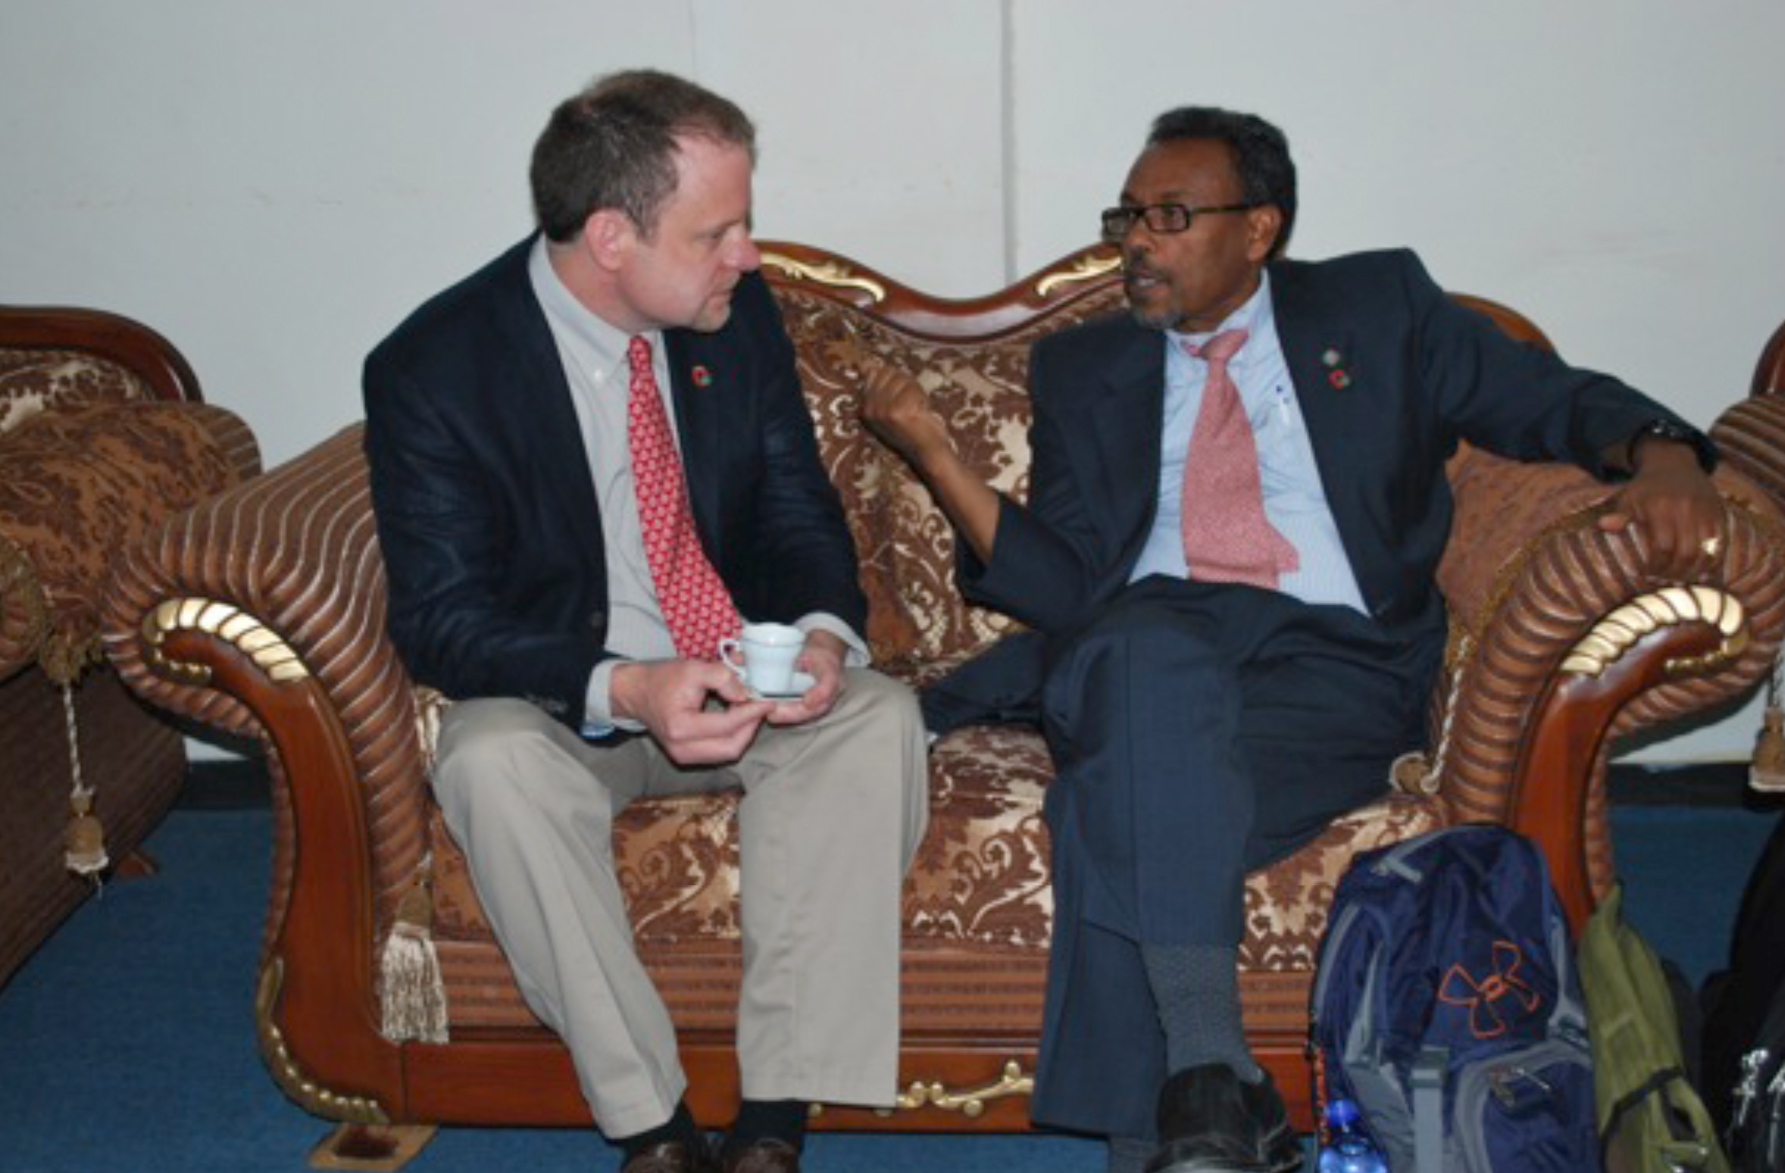 We were welcomed to the University of Gondar by President Mengesha Admassu. With incence wafting through the room, we were served coffee and talked with senior leadership of the University.  President Admassau expressed the great value that the University of Gondar placed on its collaboration with Ohio State.